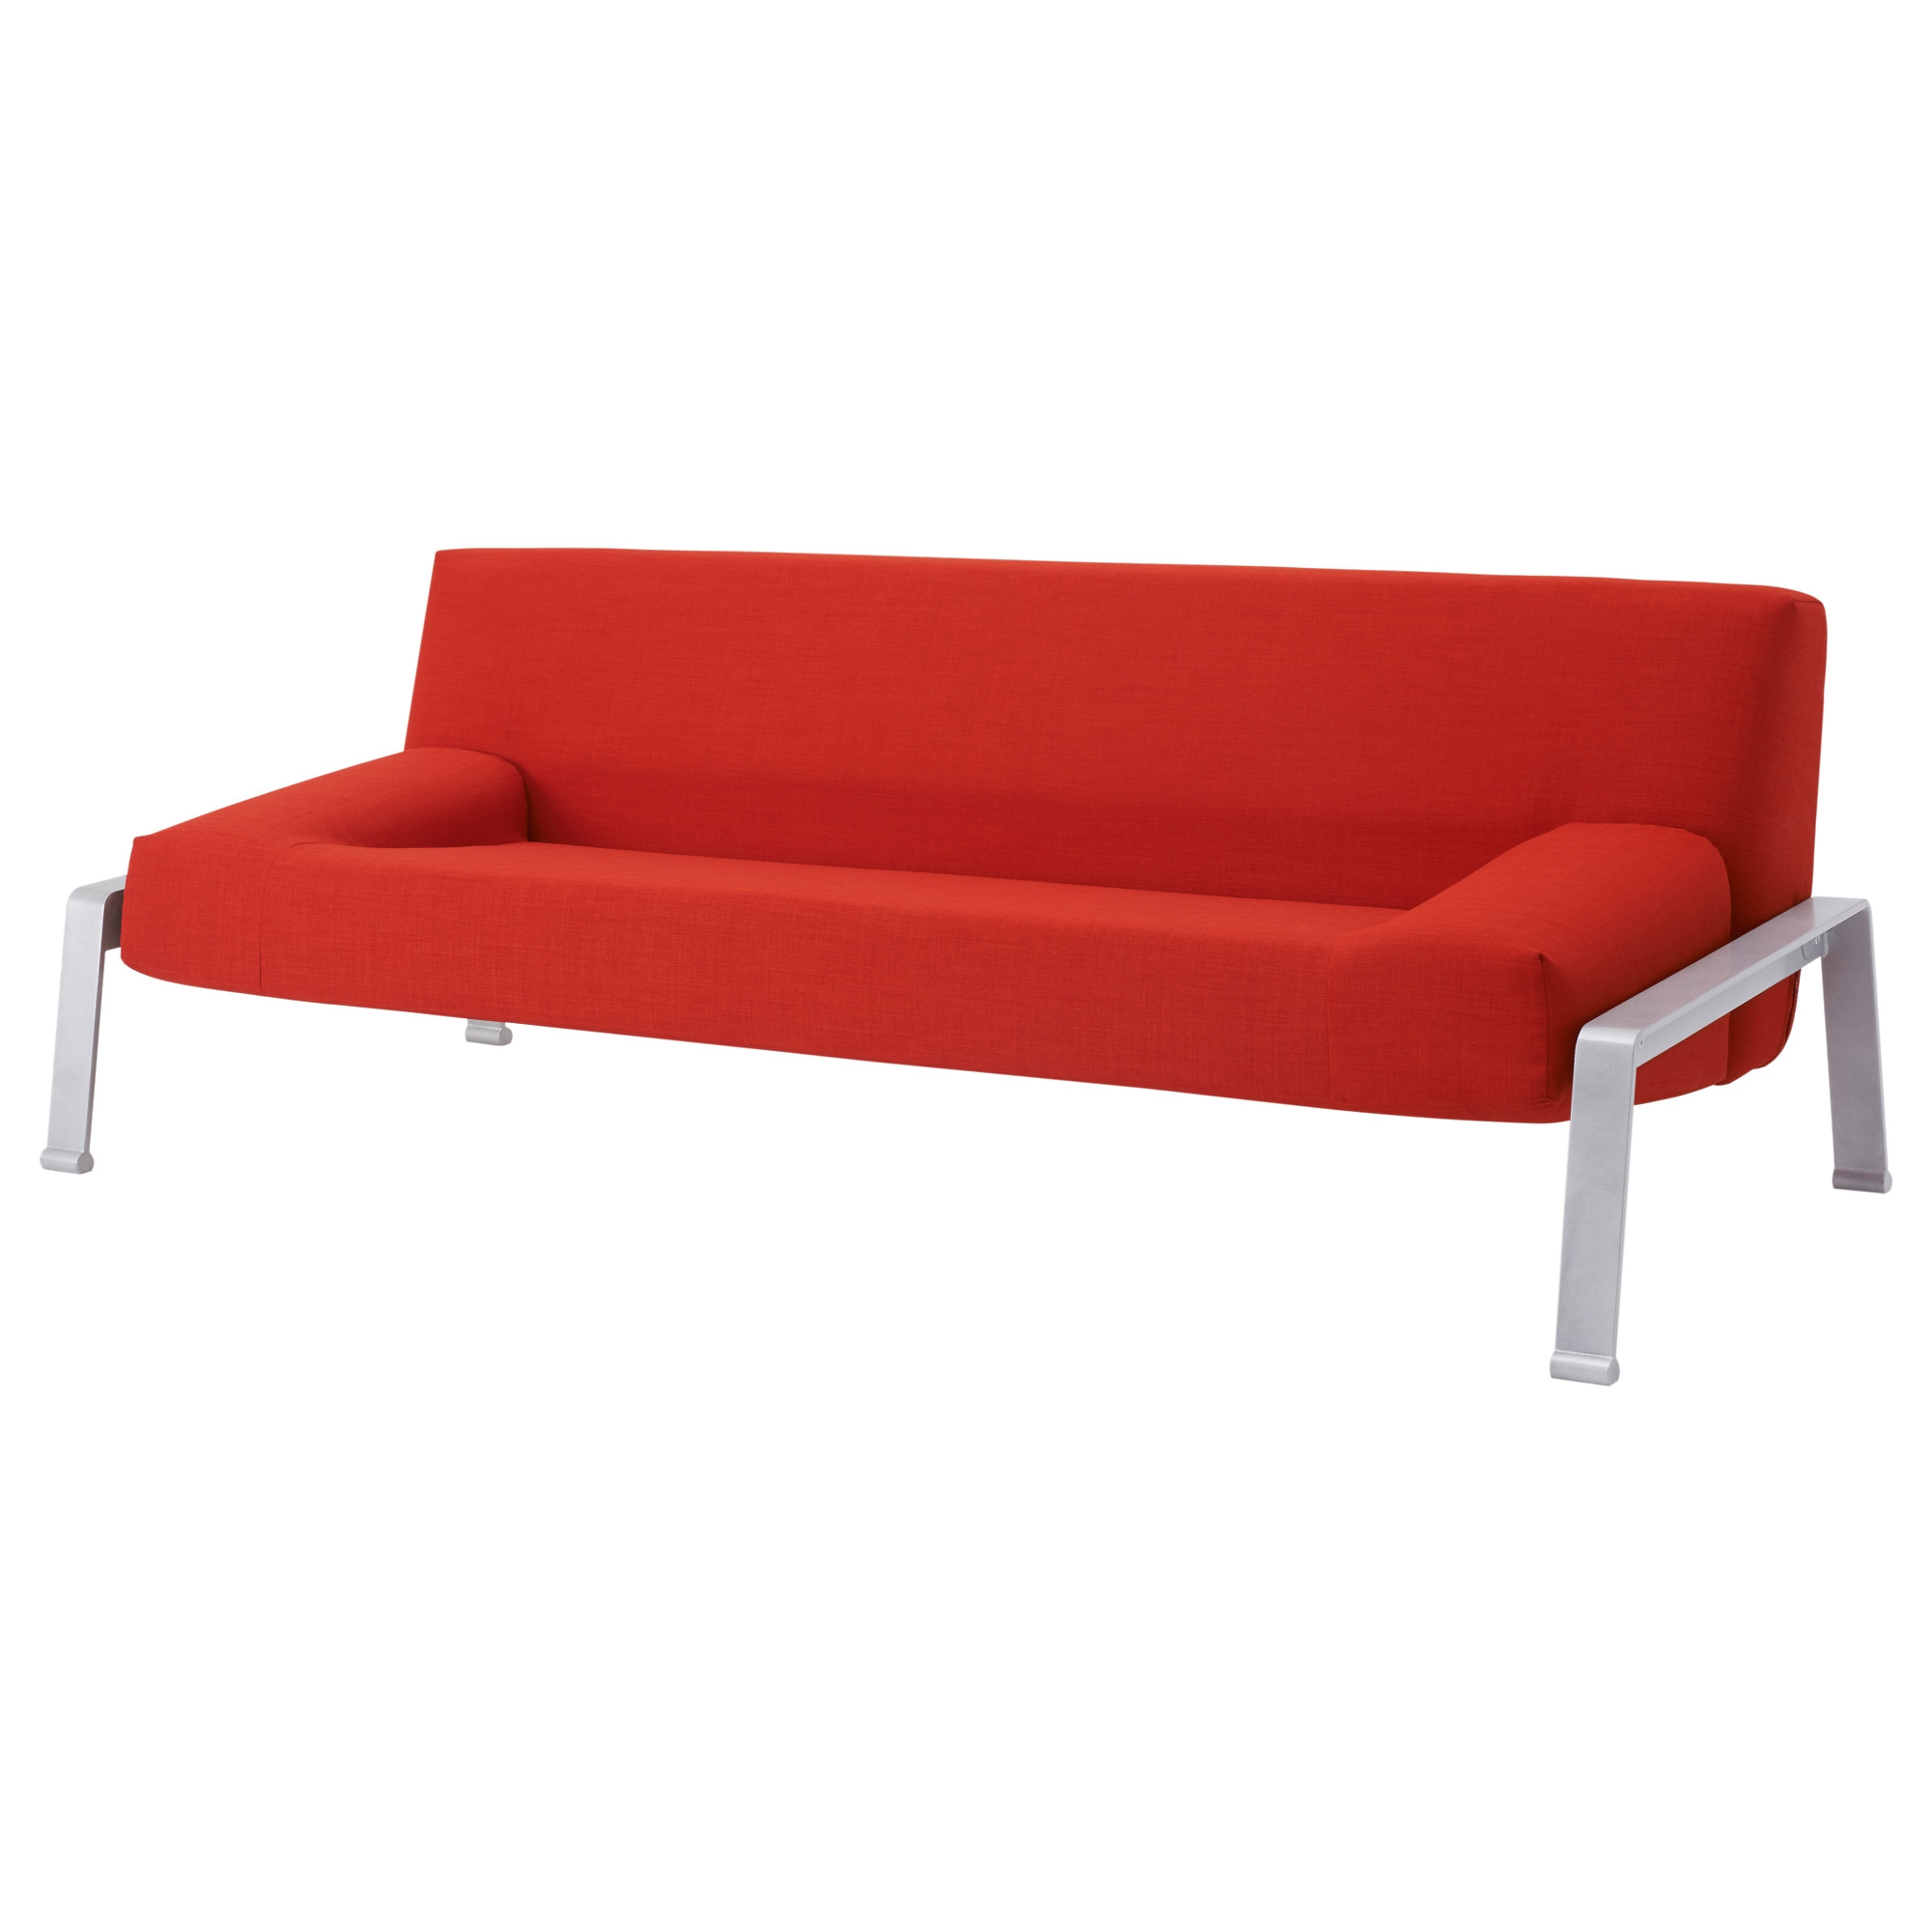 Exceptionnel ERSKA Sleeper Sofa   Skiftebo Orange   IKEA